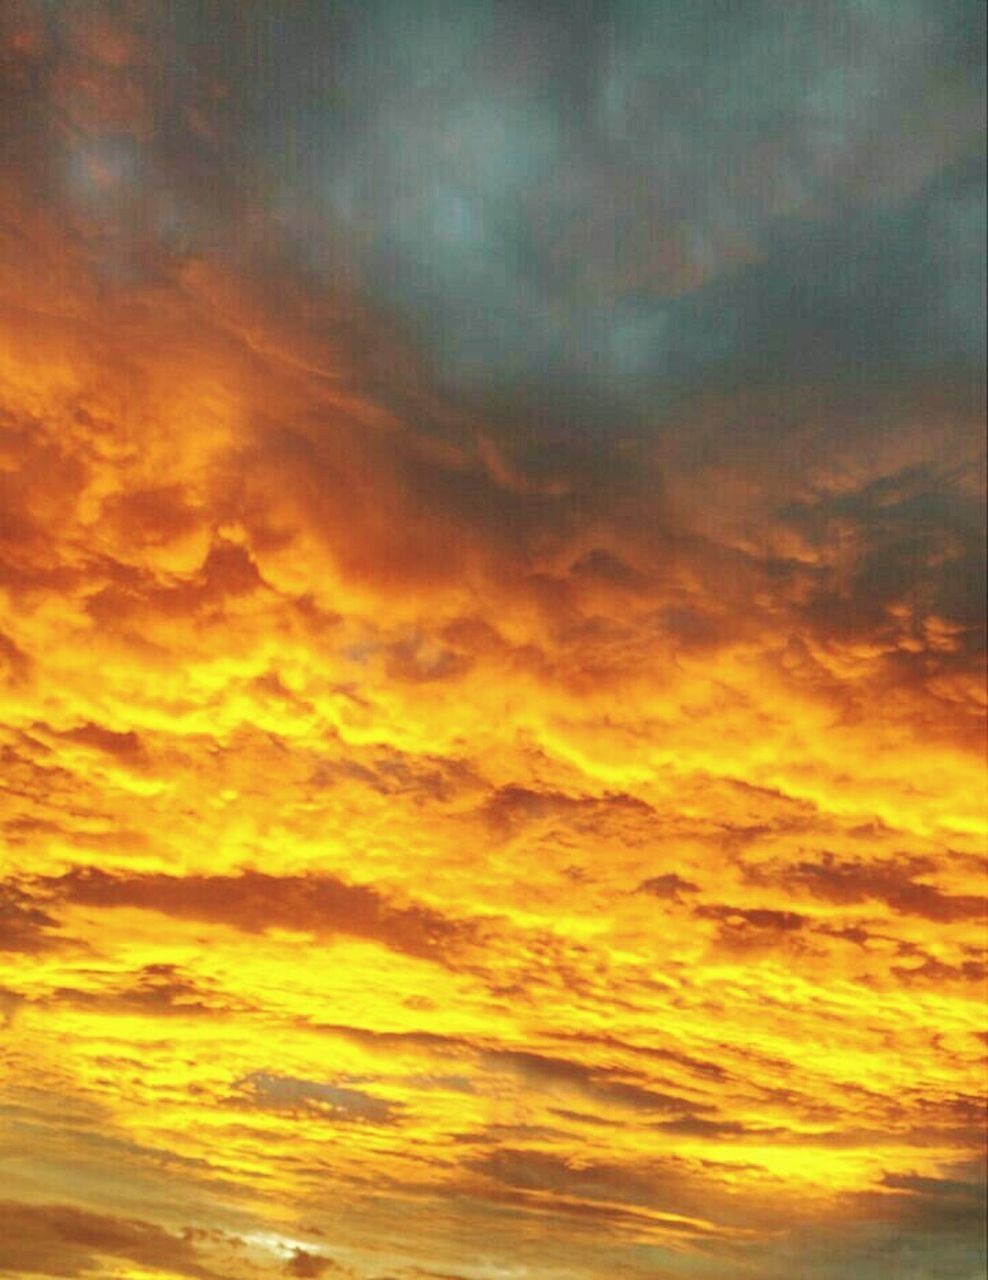 cloud - sky, sunset, dramatic sky, orange color, sky, nature, beauty in nature, scenics, backgrounds, yellow, dusk, no people, abstract, tranquil scene, night, sky only, outdoors, red, multi colored, space